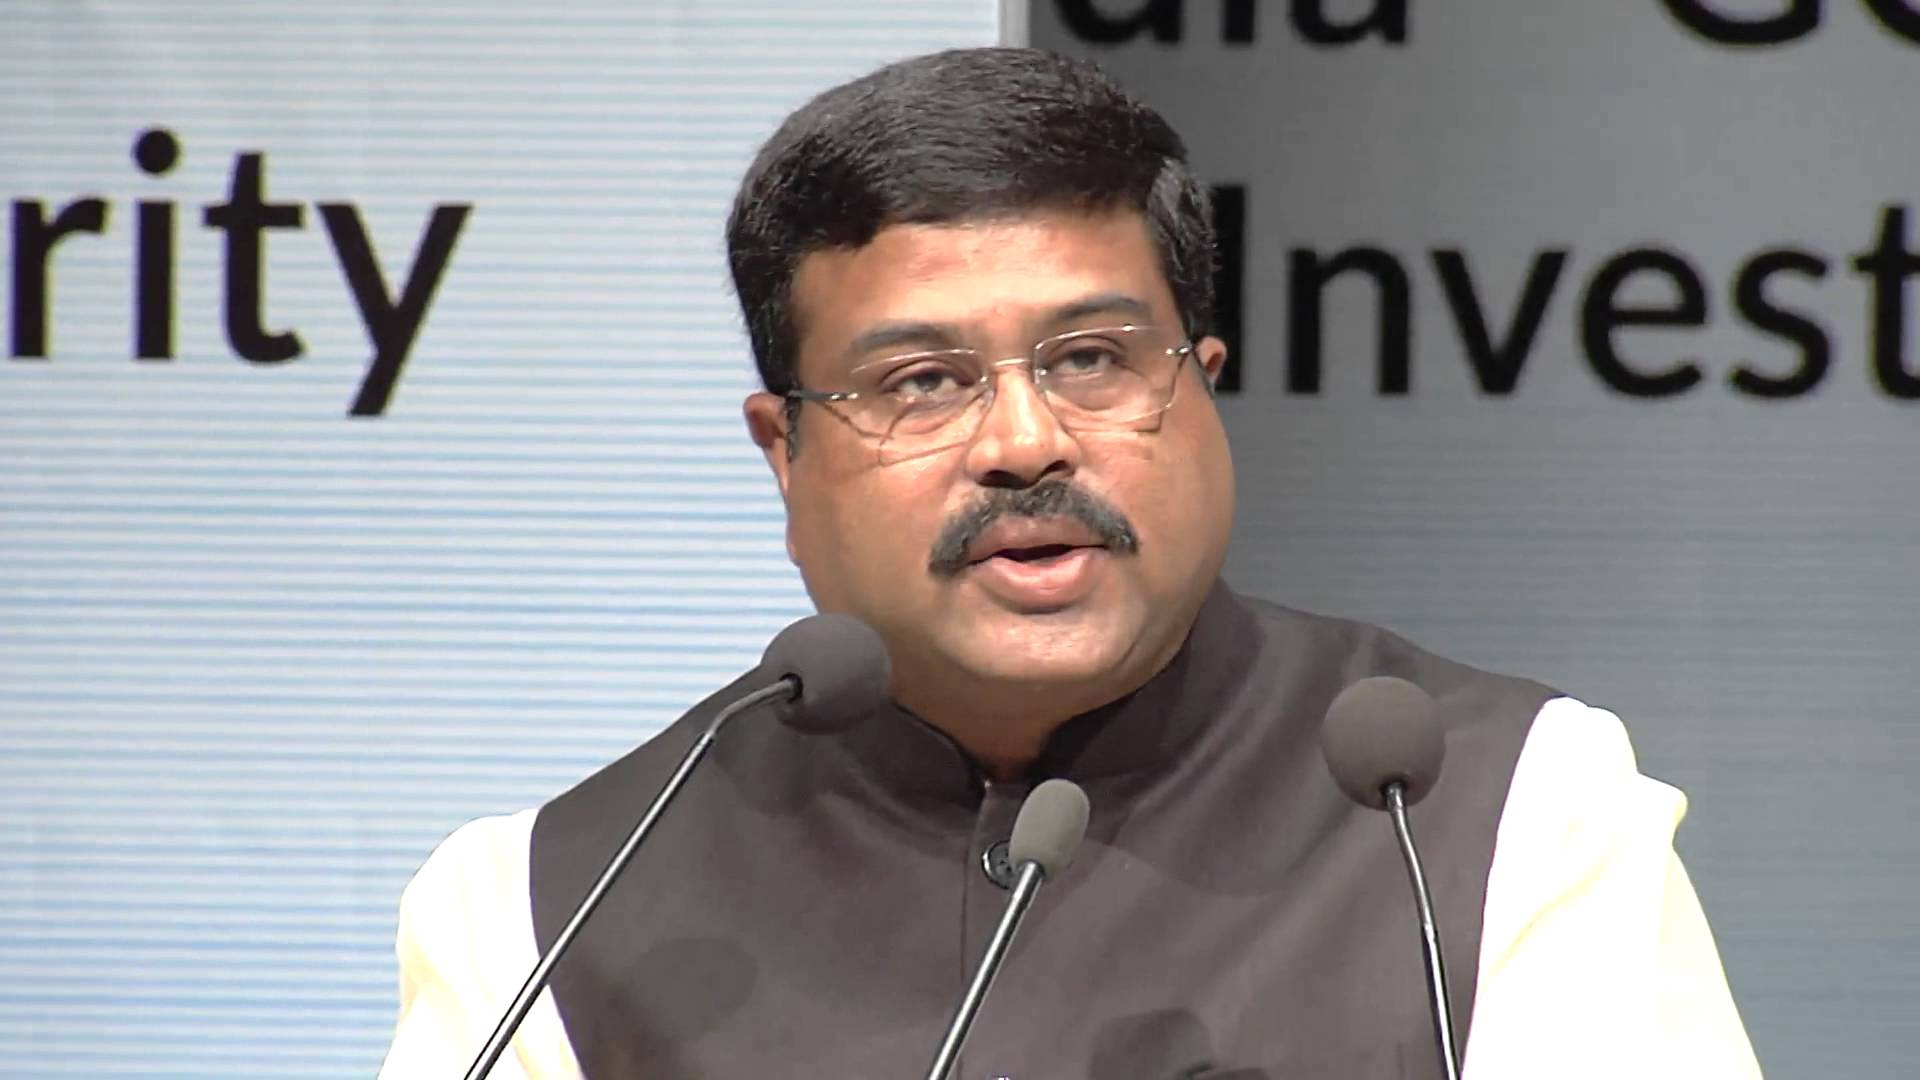 India will increase its refining capacity: Pradhan